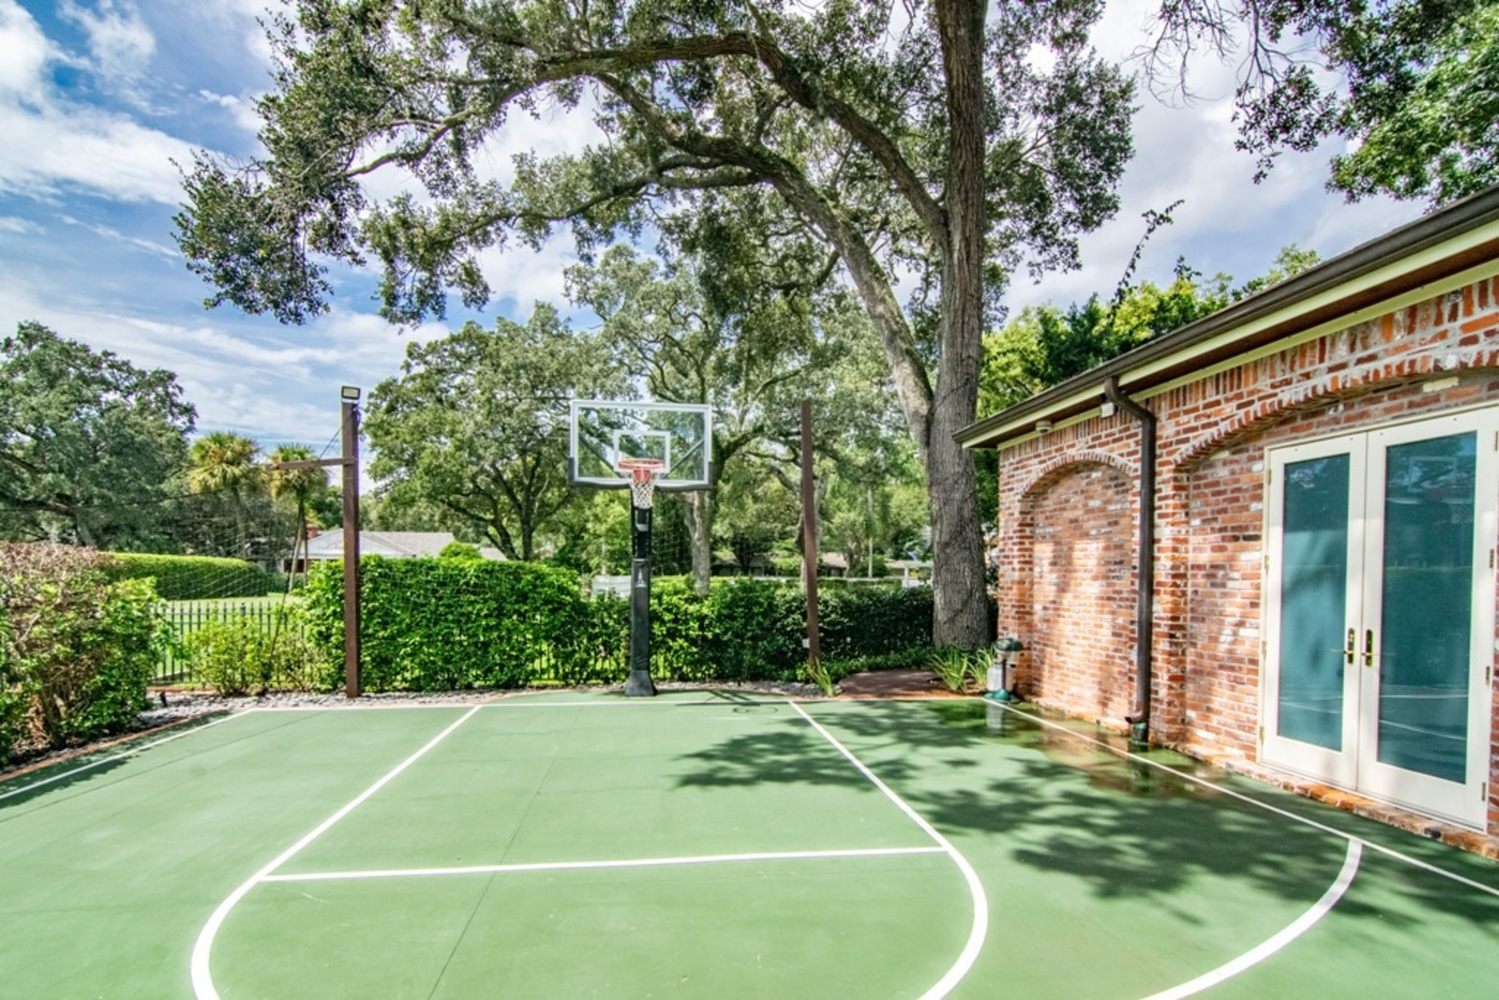 135 basketball court